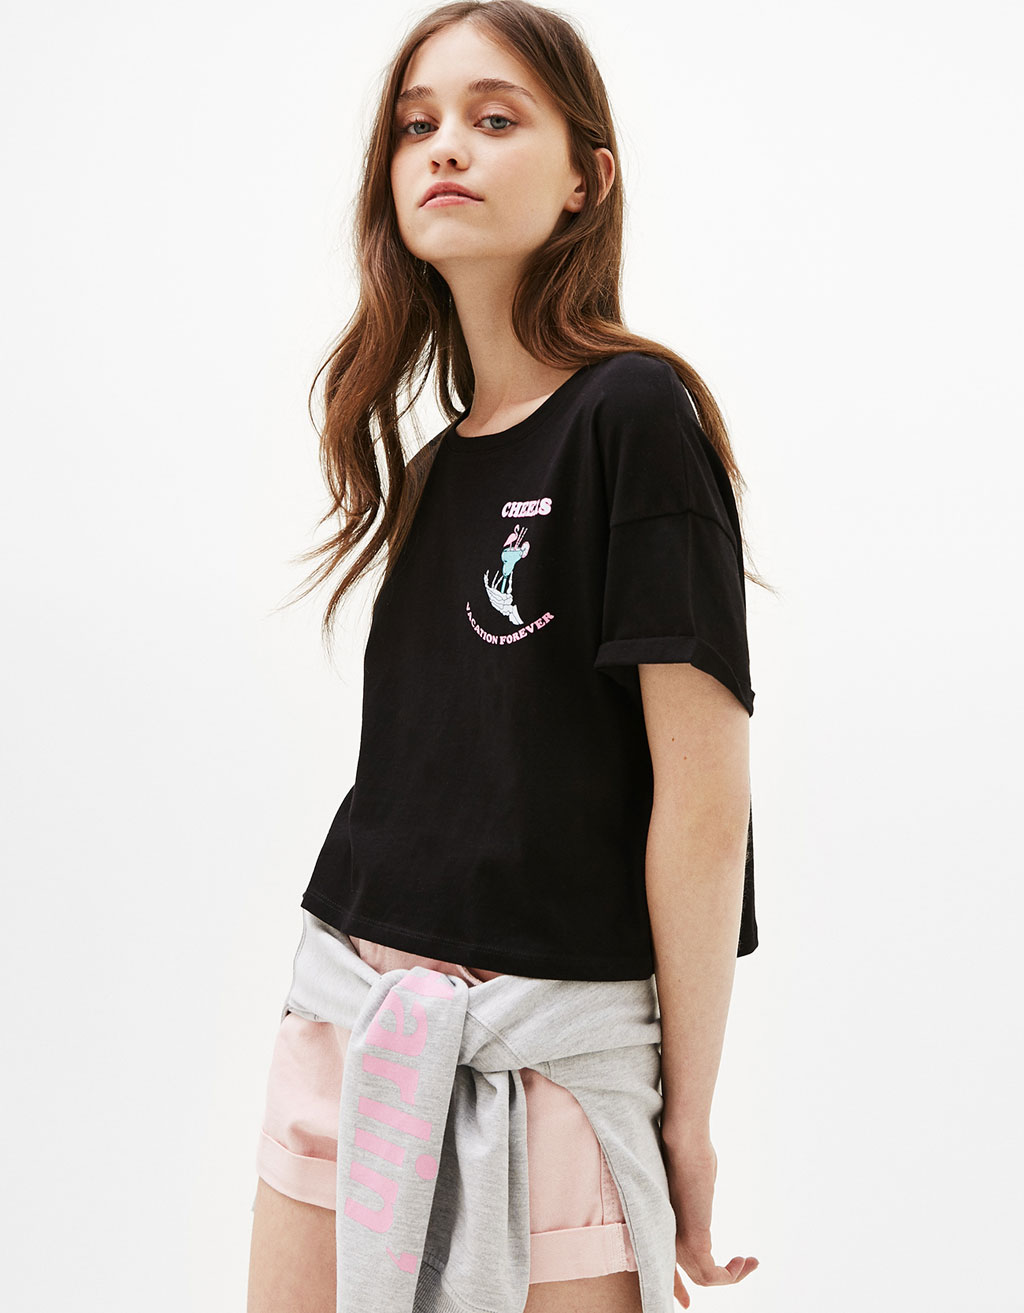 Cropped T-shirt with Cheers/Flamingo print